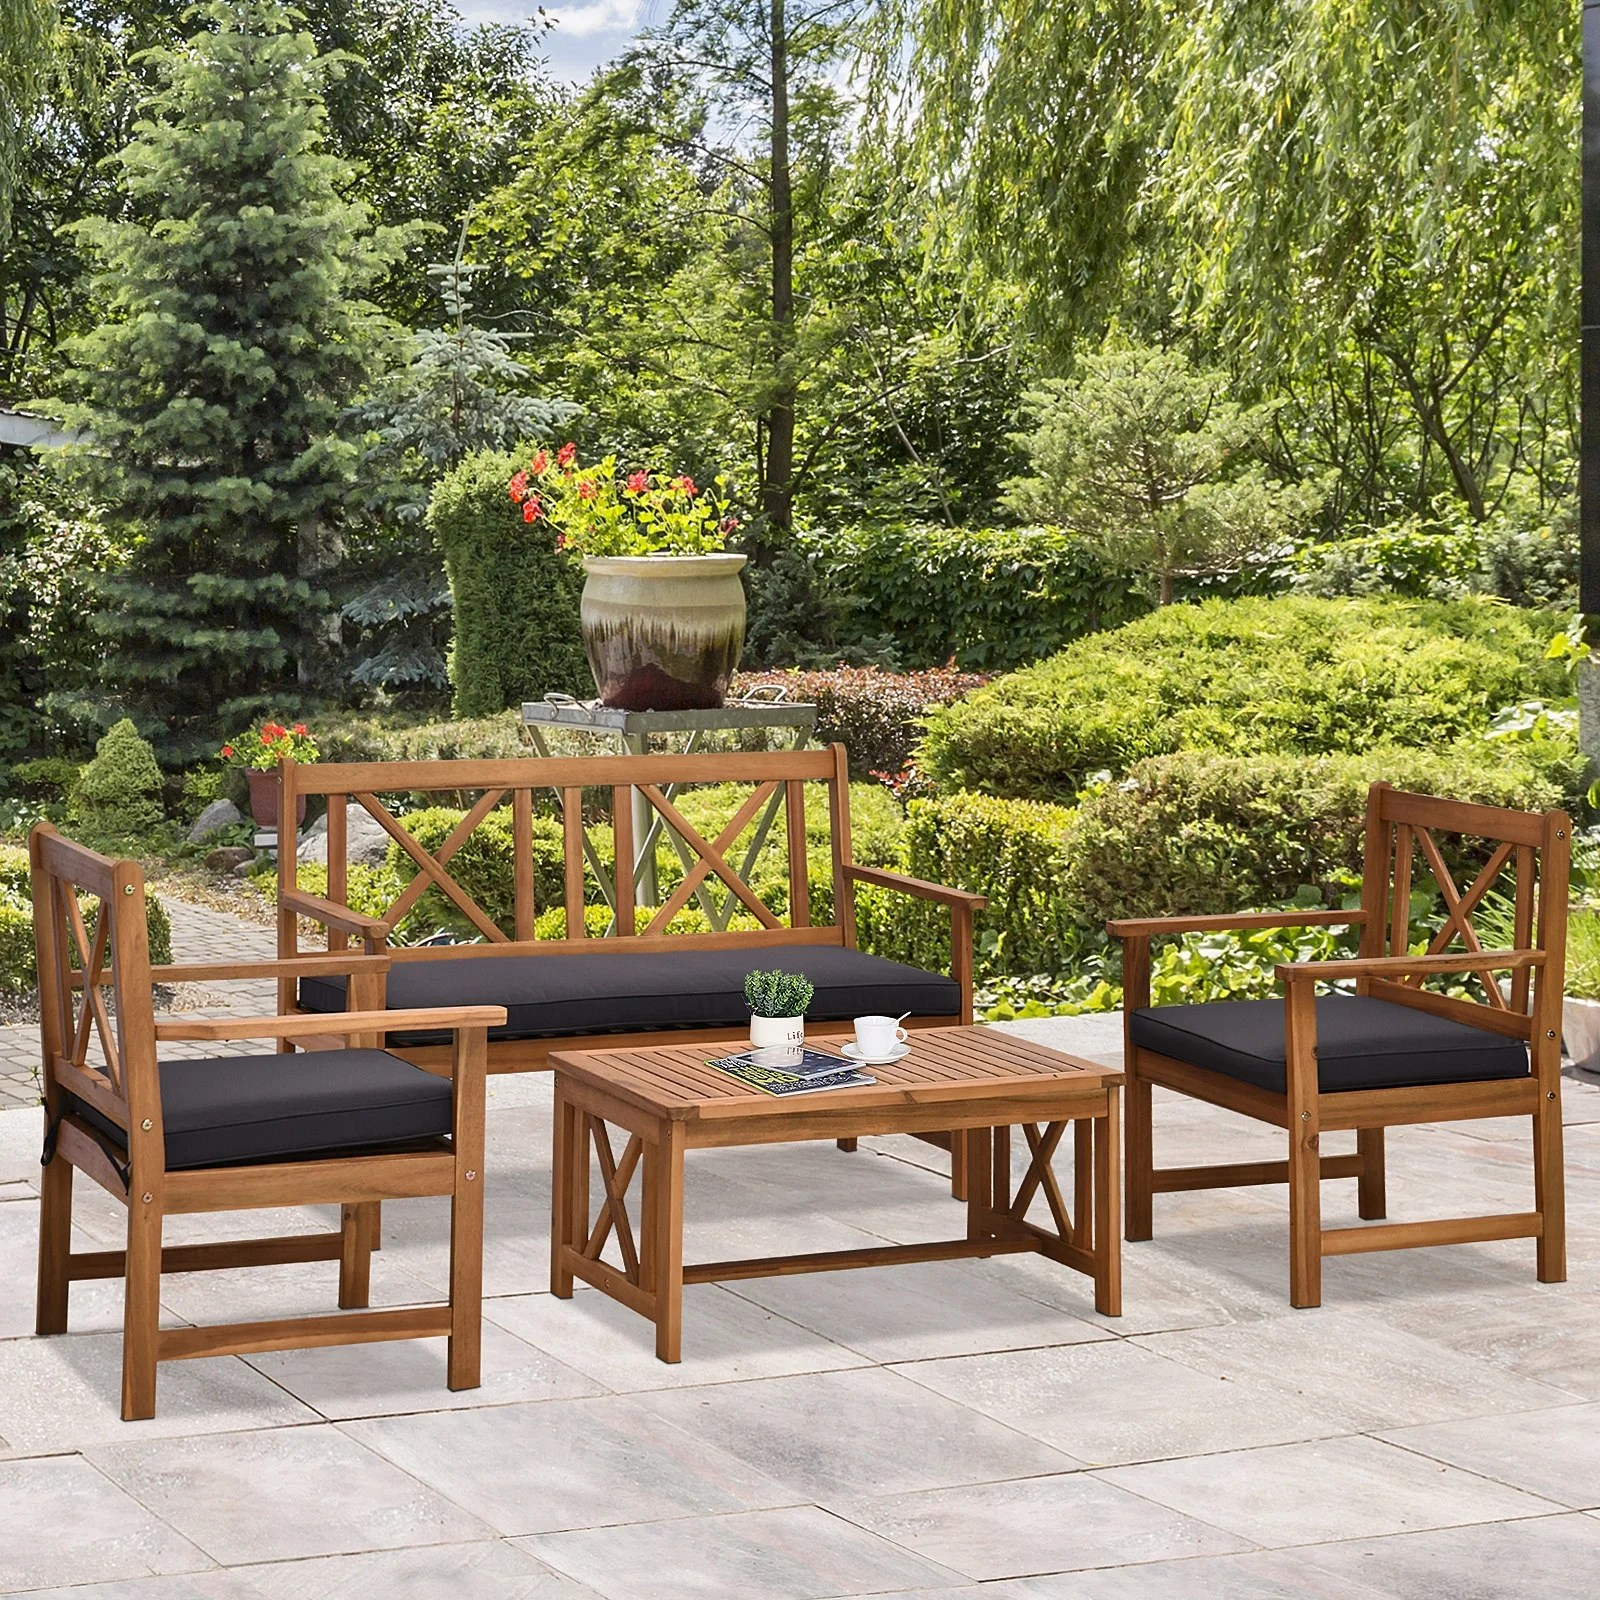 outsunny 4 piece acacia wood outdoor patio furniture set with 2 armchairs 1 sofa 1 coffee table cushions included